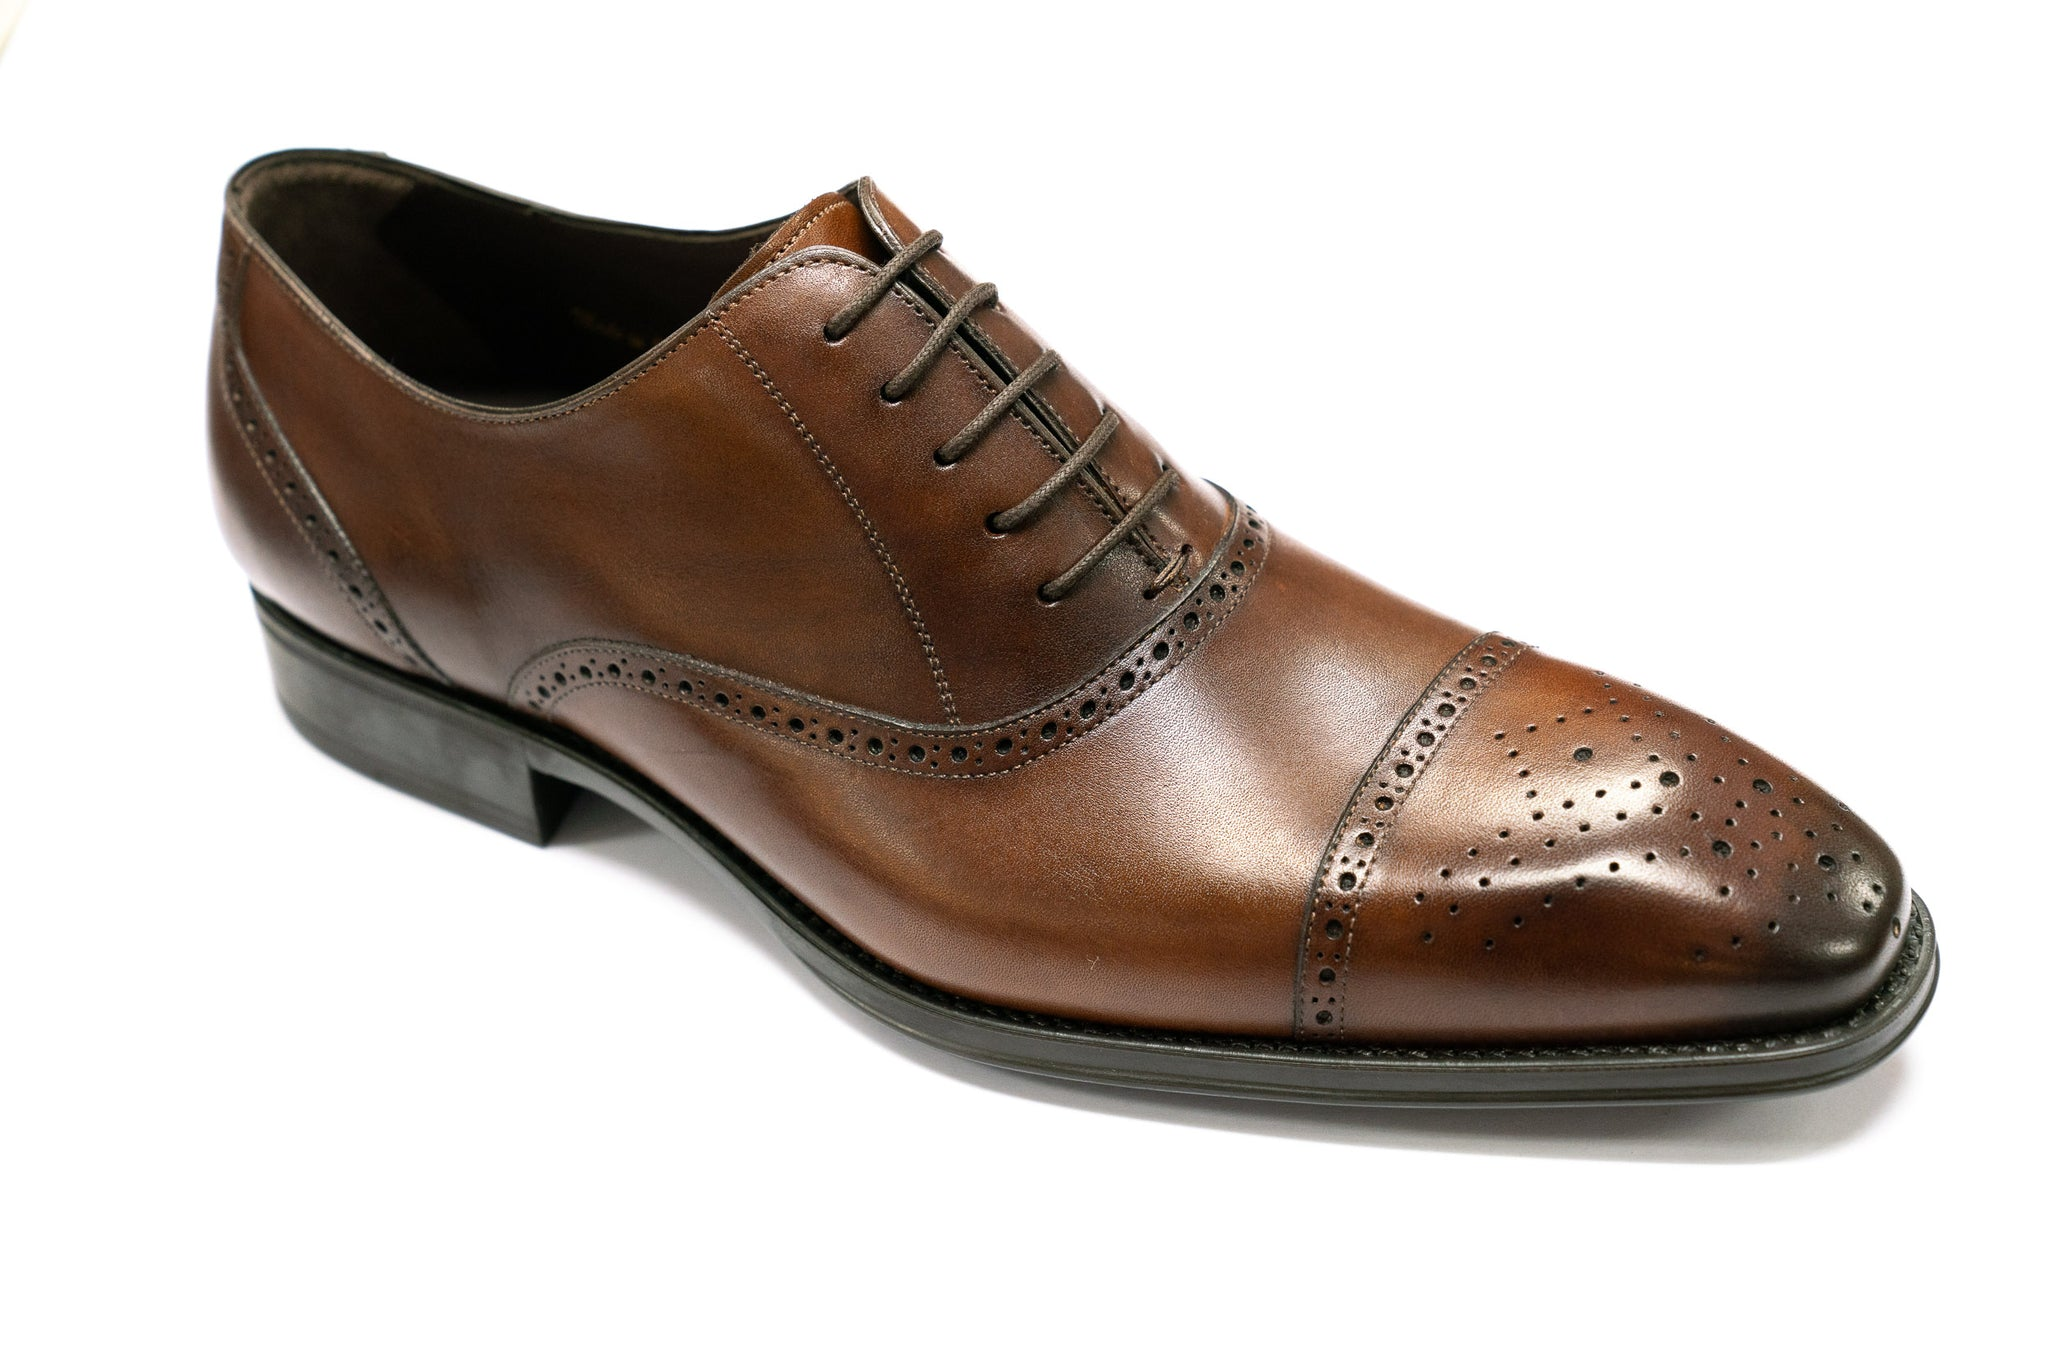 Mezlan Buckland Oxford in Cognac - Rainwater's